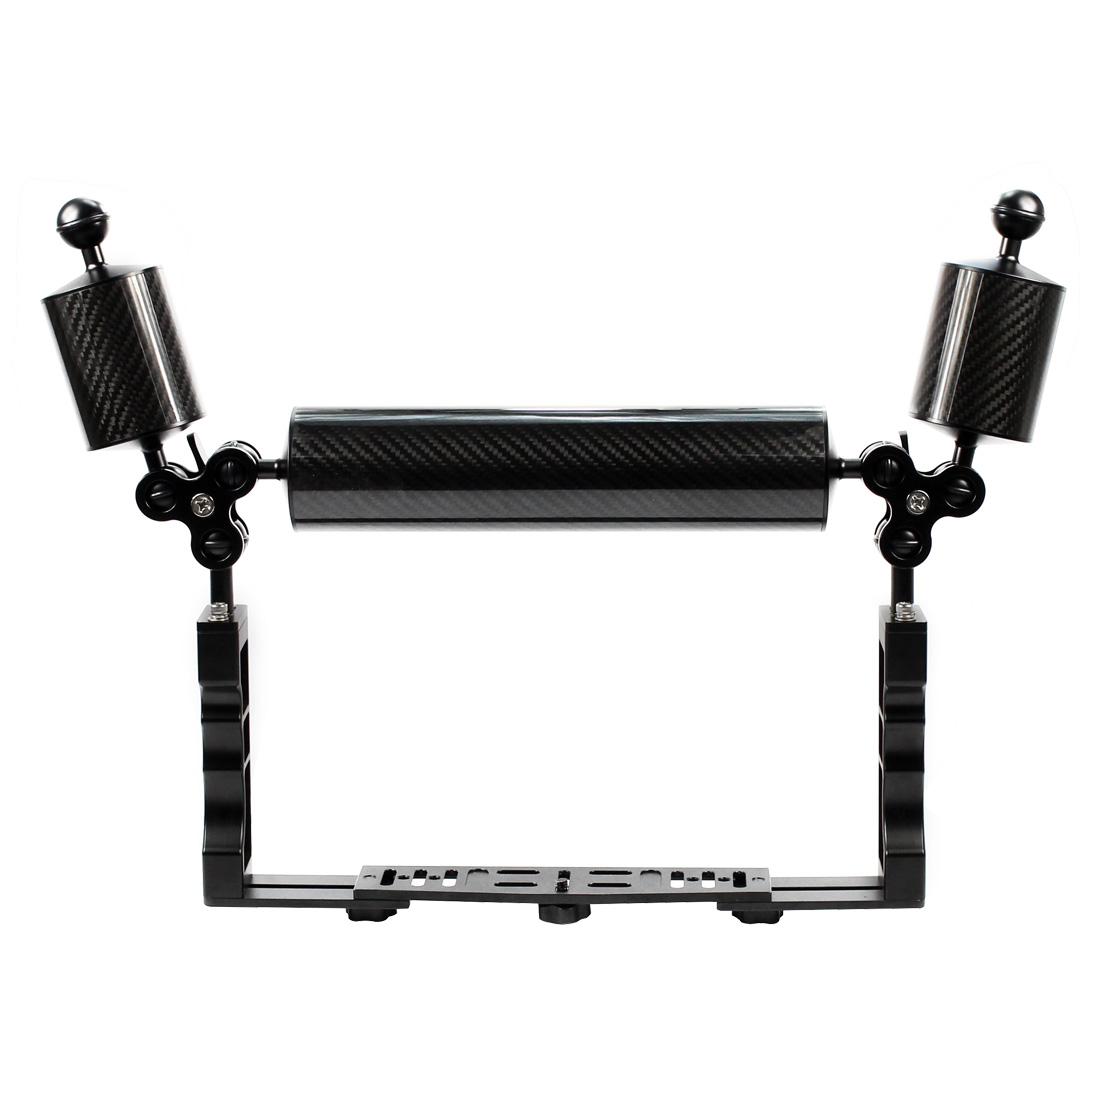 Aluminum Diving Underwater Tray Kit Light Extension Arm Bracket System With Handle Grip Stabilizer Rig Sports SLR Camera Housing